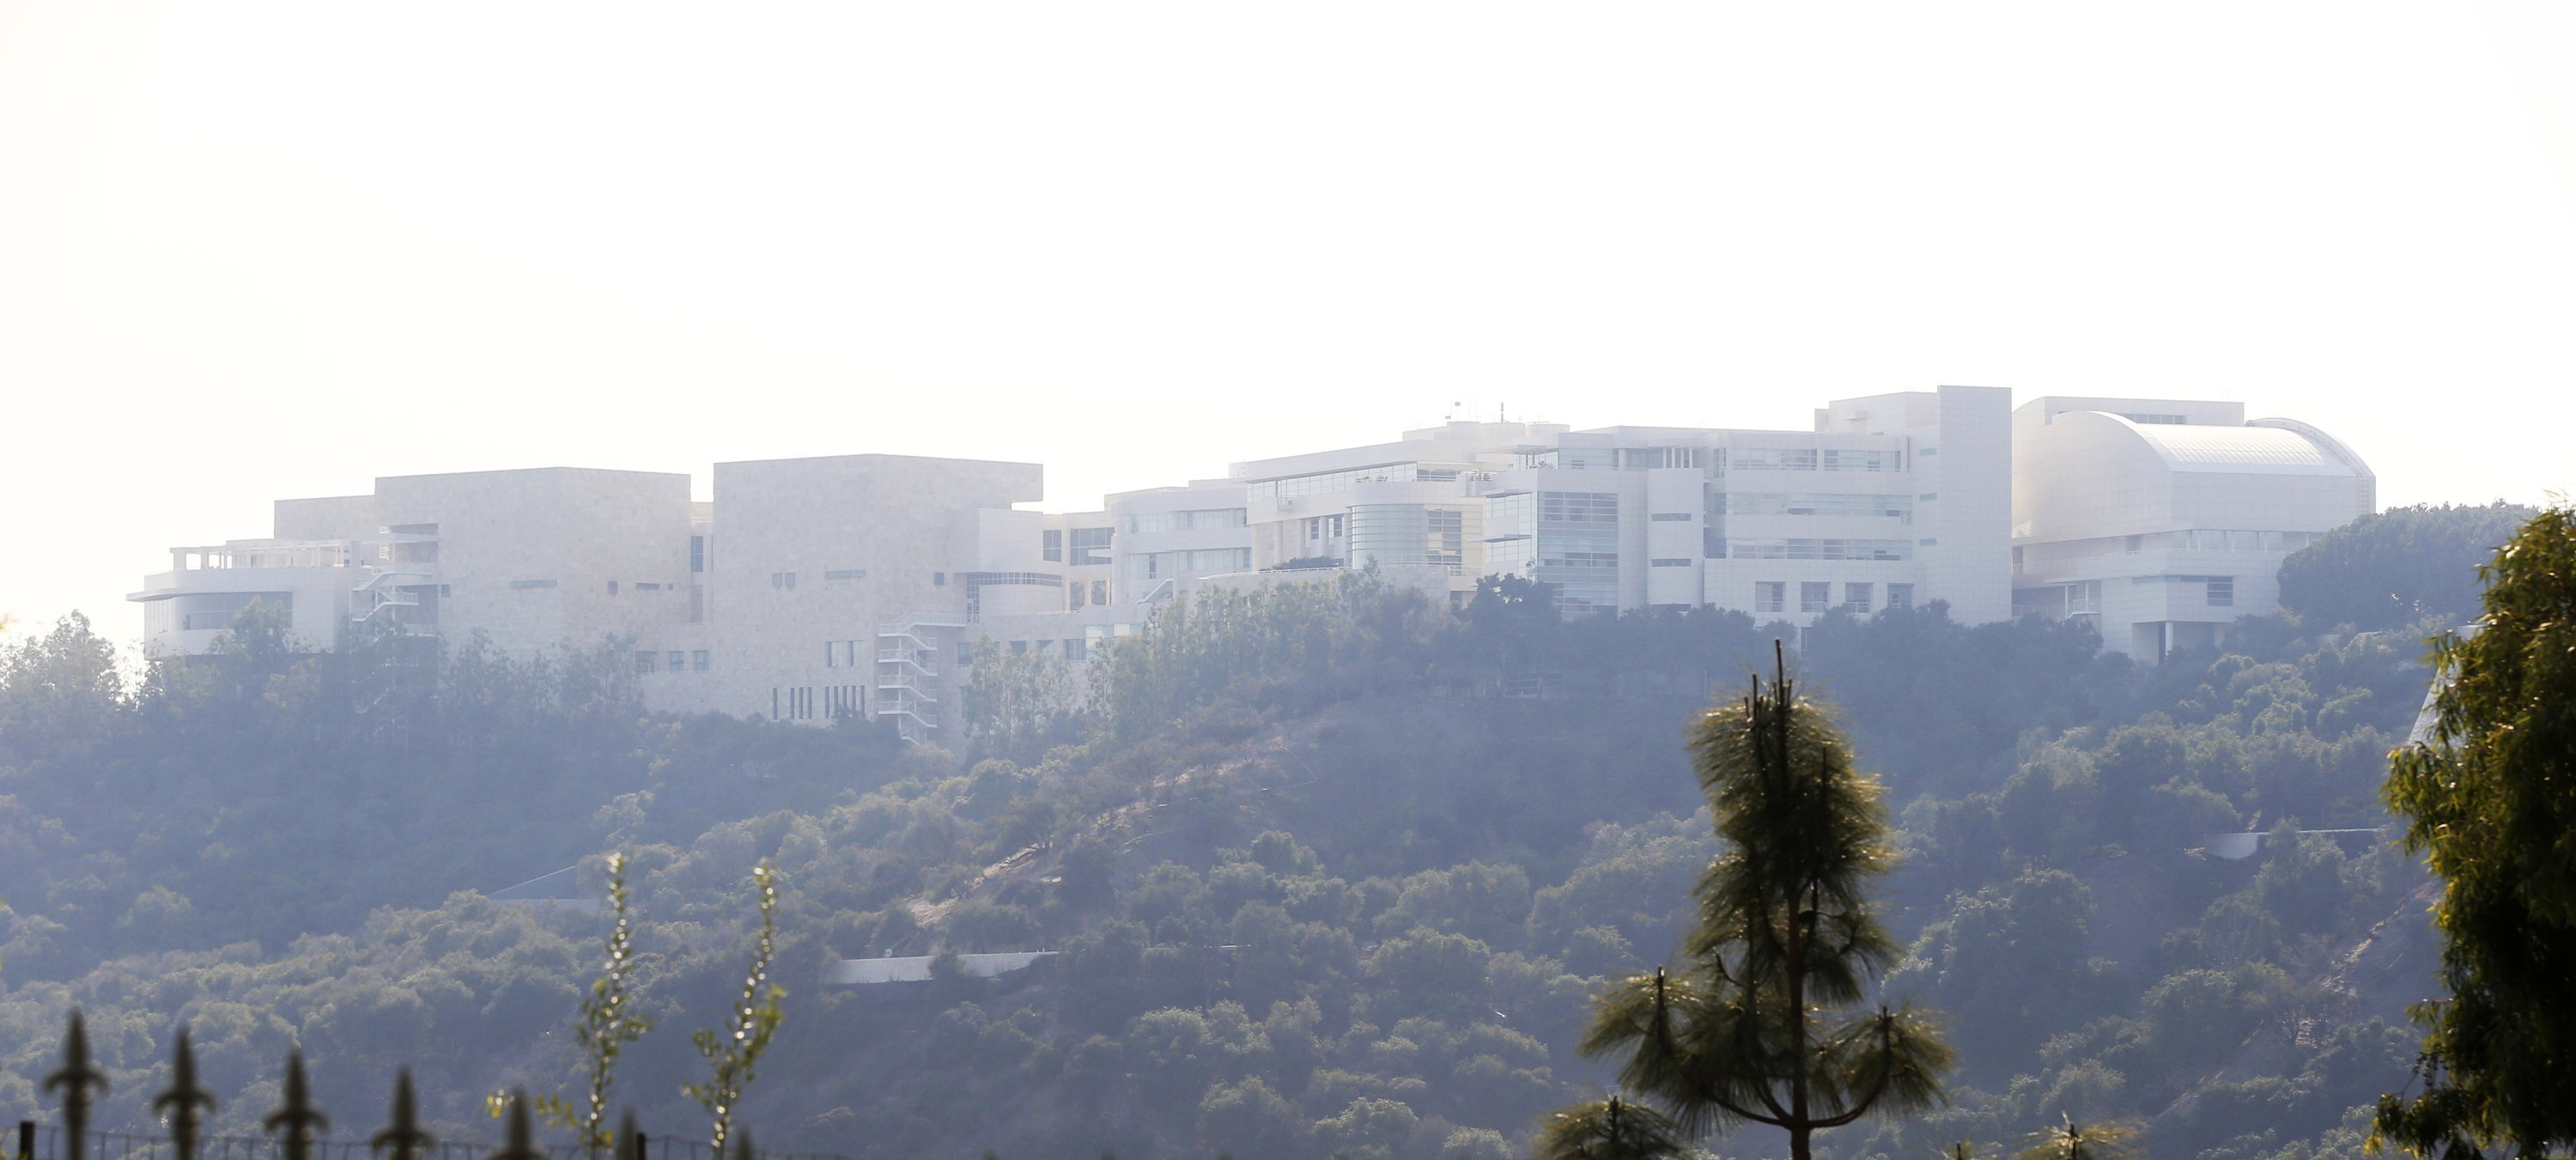 **This image is for use with this specific article only.**  The Getty Center lies shrouded in smoke as seen from the Bel-Air district of Los Angeles after the Skirball Fire swept through on Wednesday, December 6, 2017.